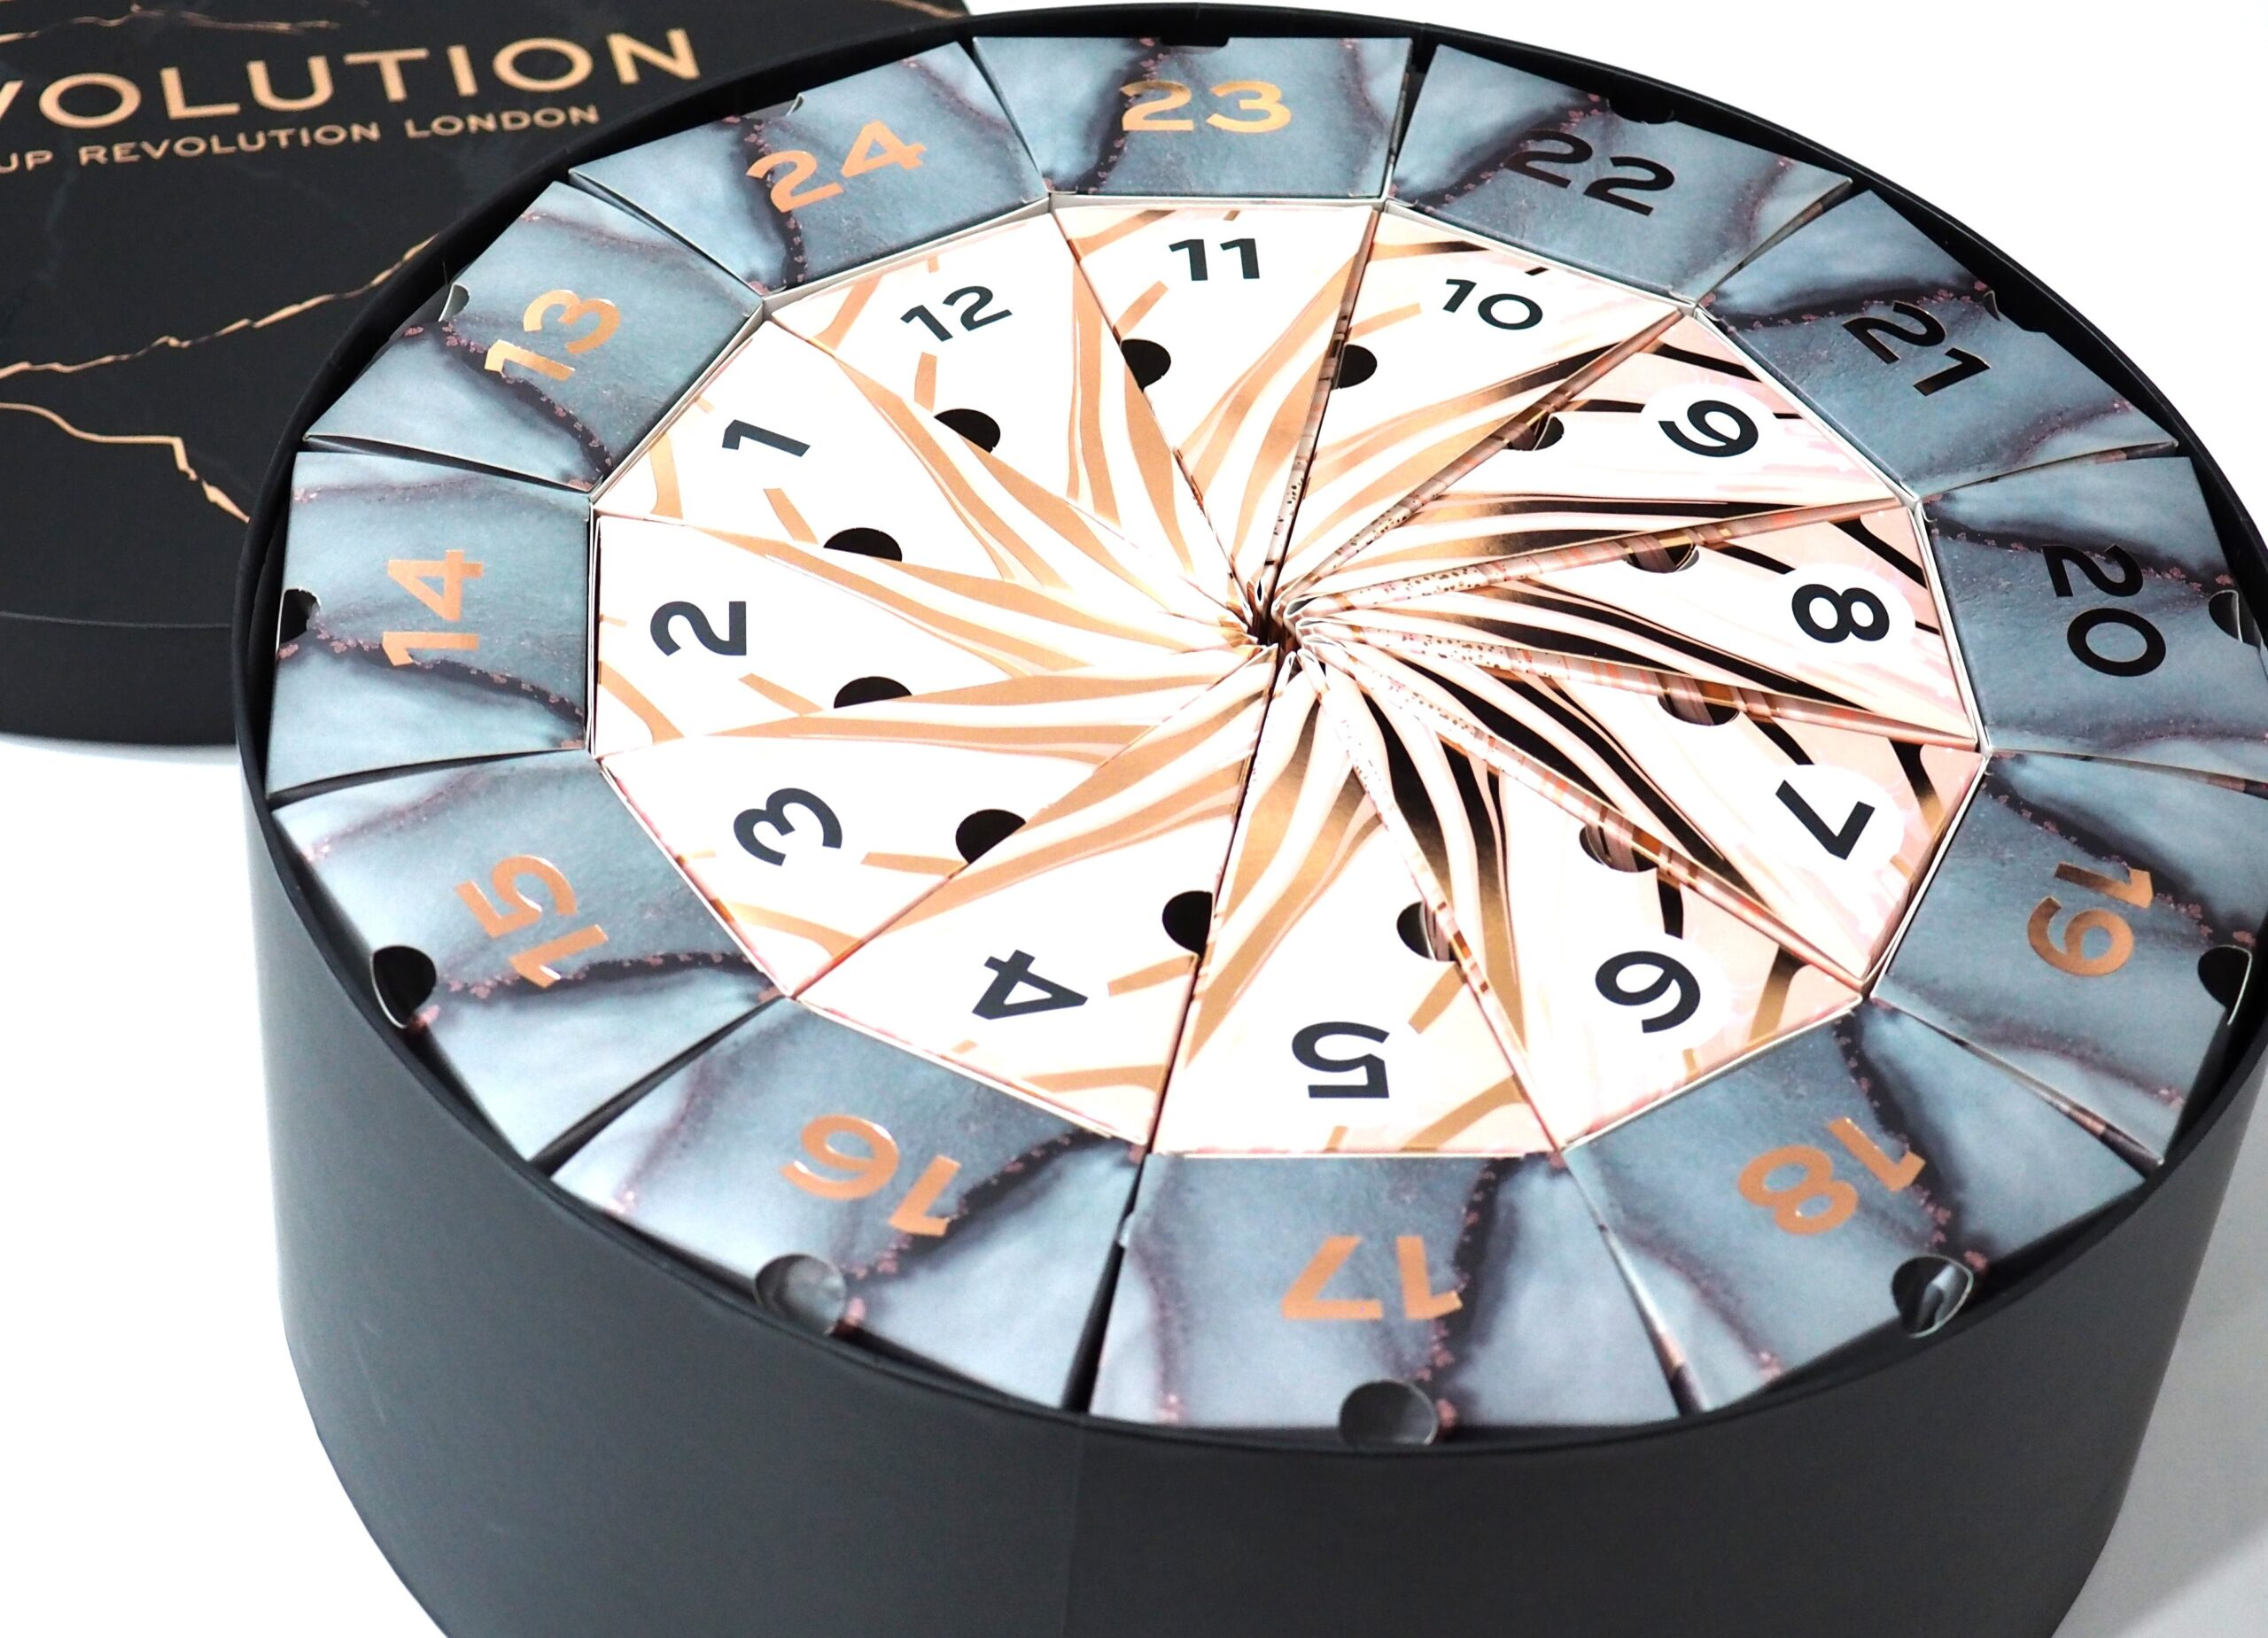 Revolution Deluxe Advent Calendar 2021 Unboxing, Review and Swatches! PLUS